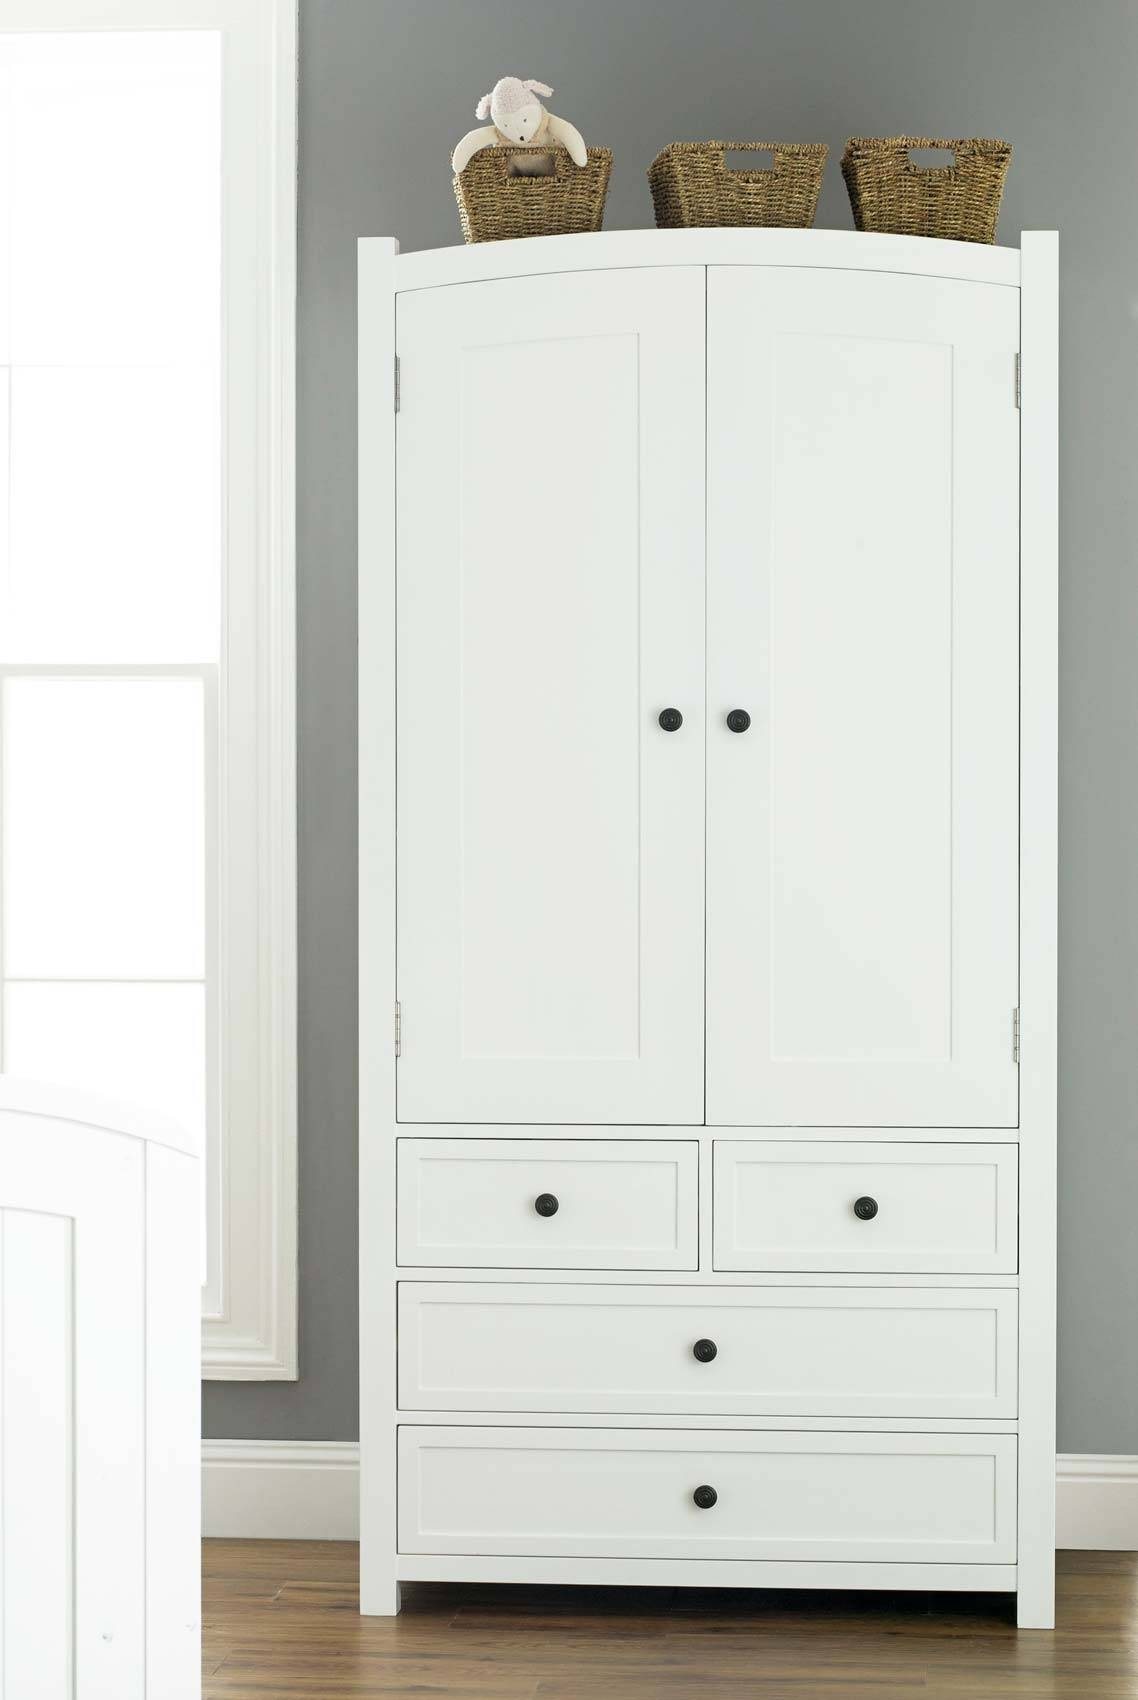 Flawless White Wooden Kids Wardrobe With Drawers And Brown Wicker regarding Wardrobe With Drawers And Shelves (Image 11 of 30)